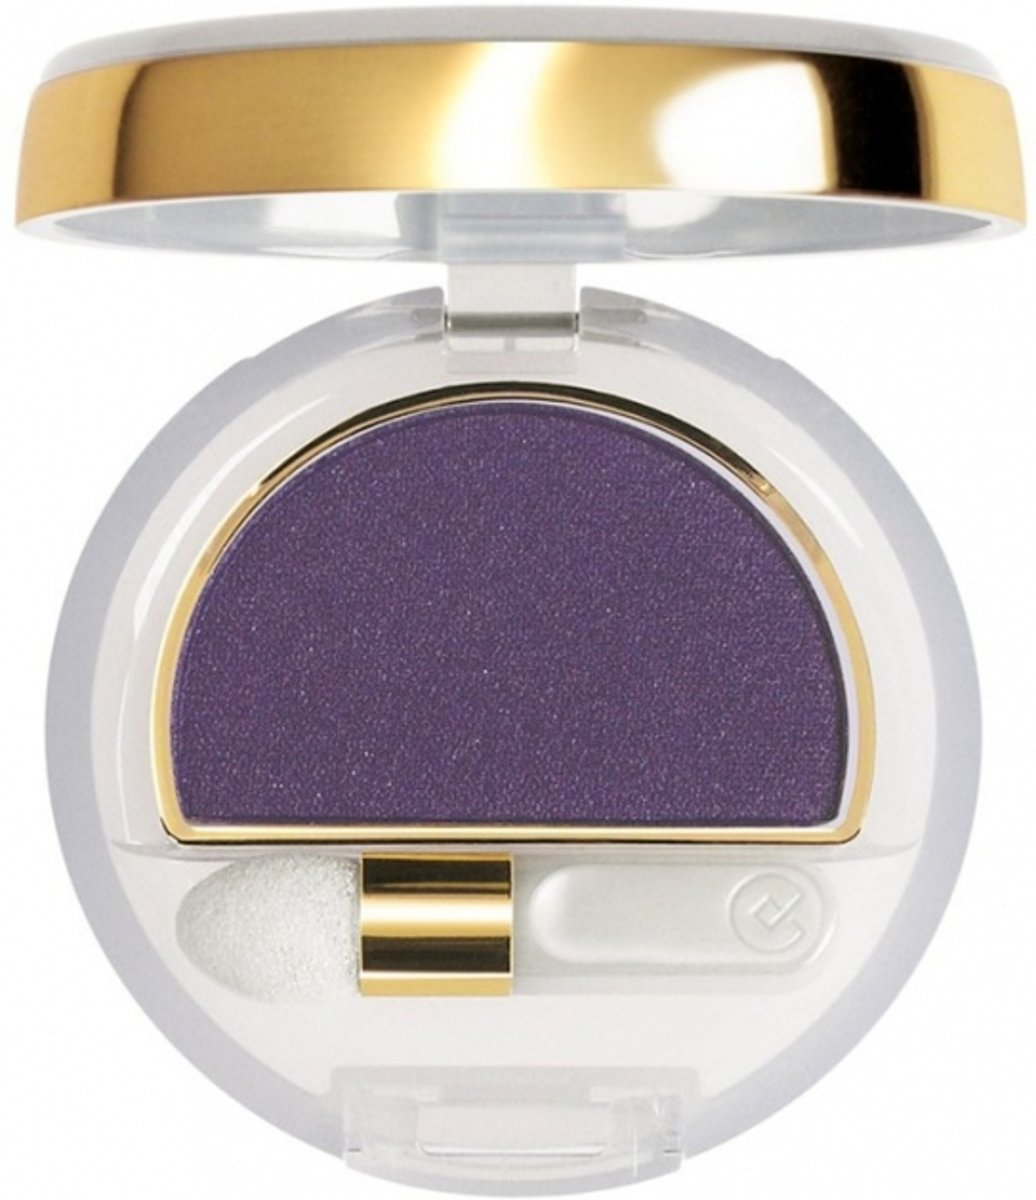 Collistar Silk Effect Eye-Shadow Oogschaduw 1 st - 047 - Violet